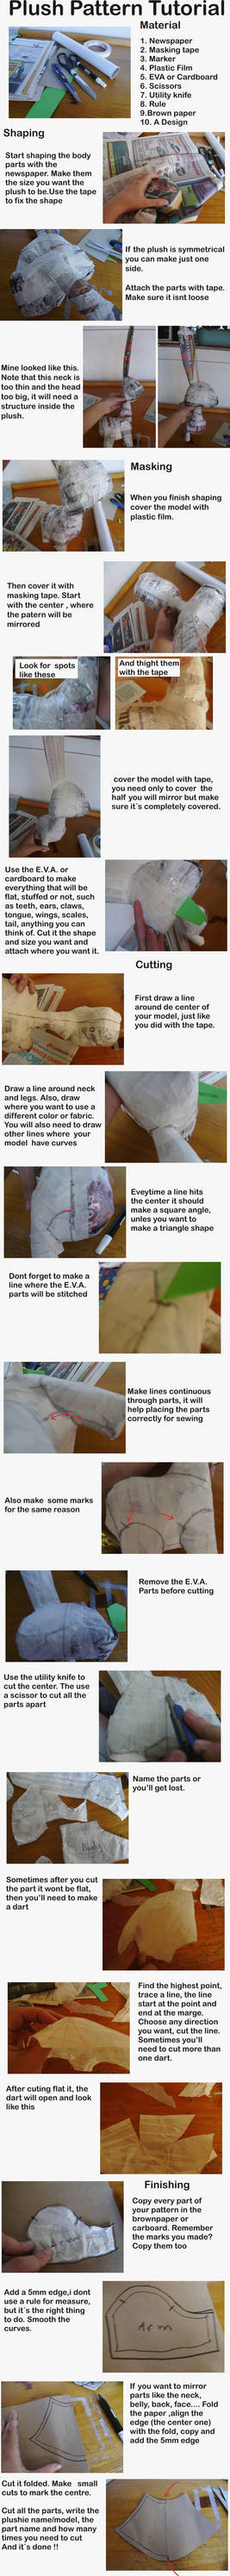 Plushie Pattern Tutorial